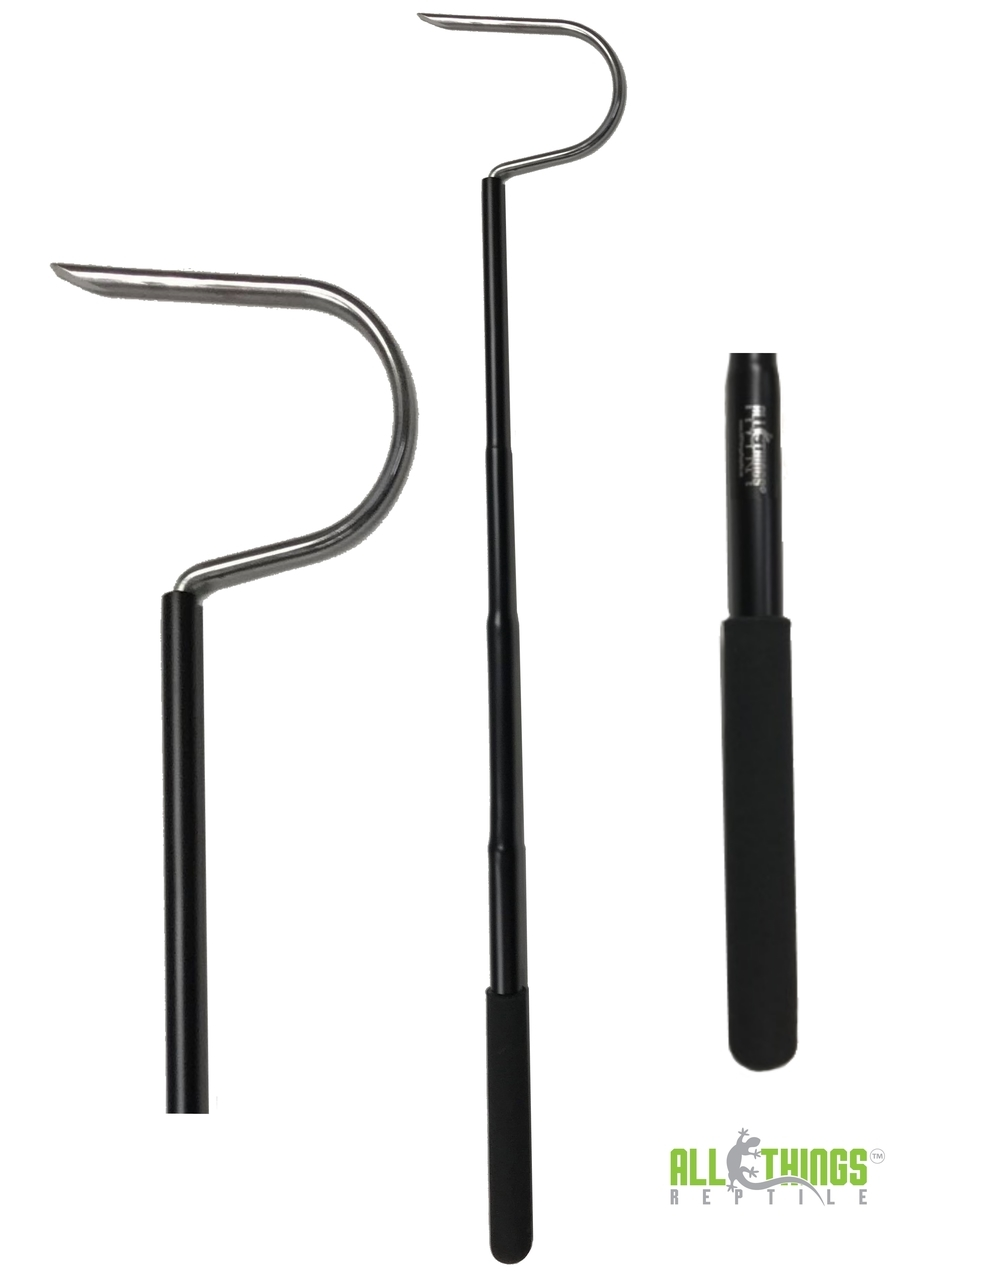 ATR Black Hook 30″ w/ Comfort Grip